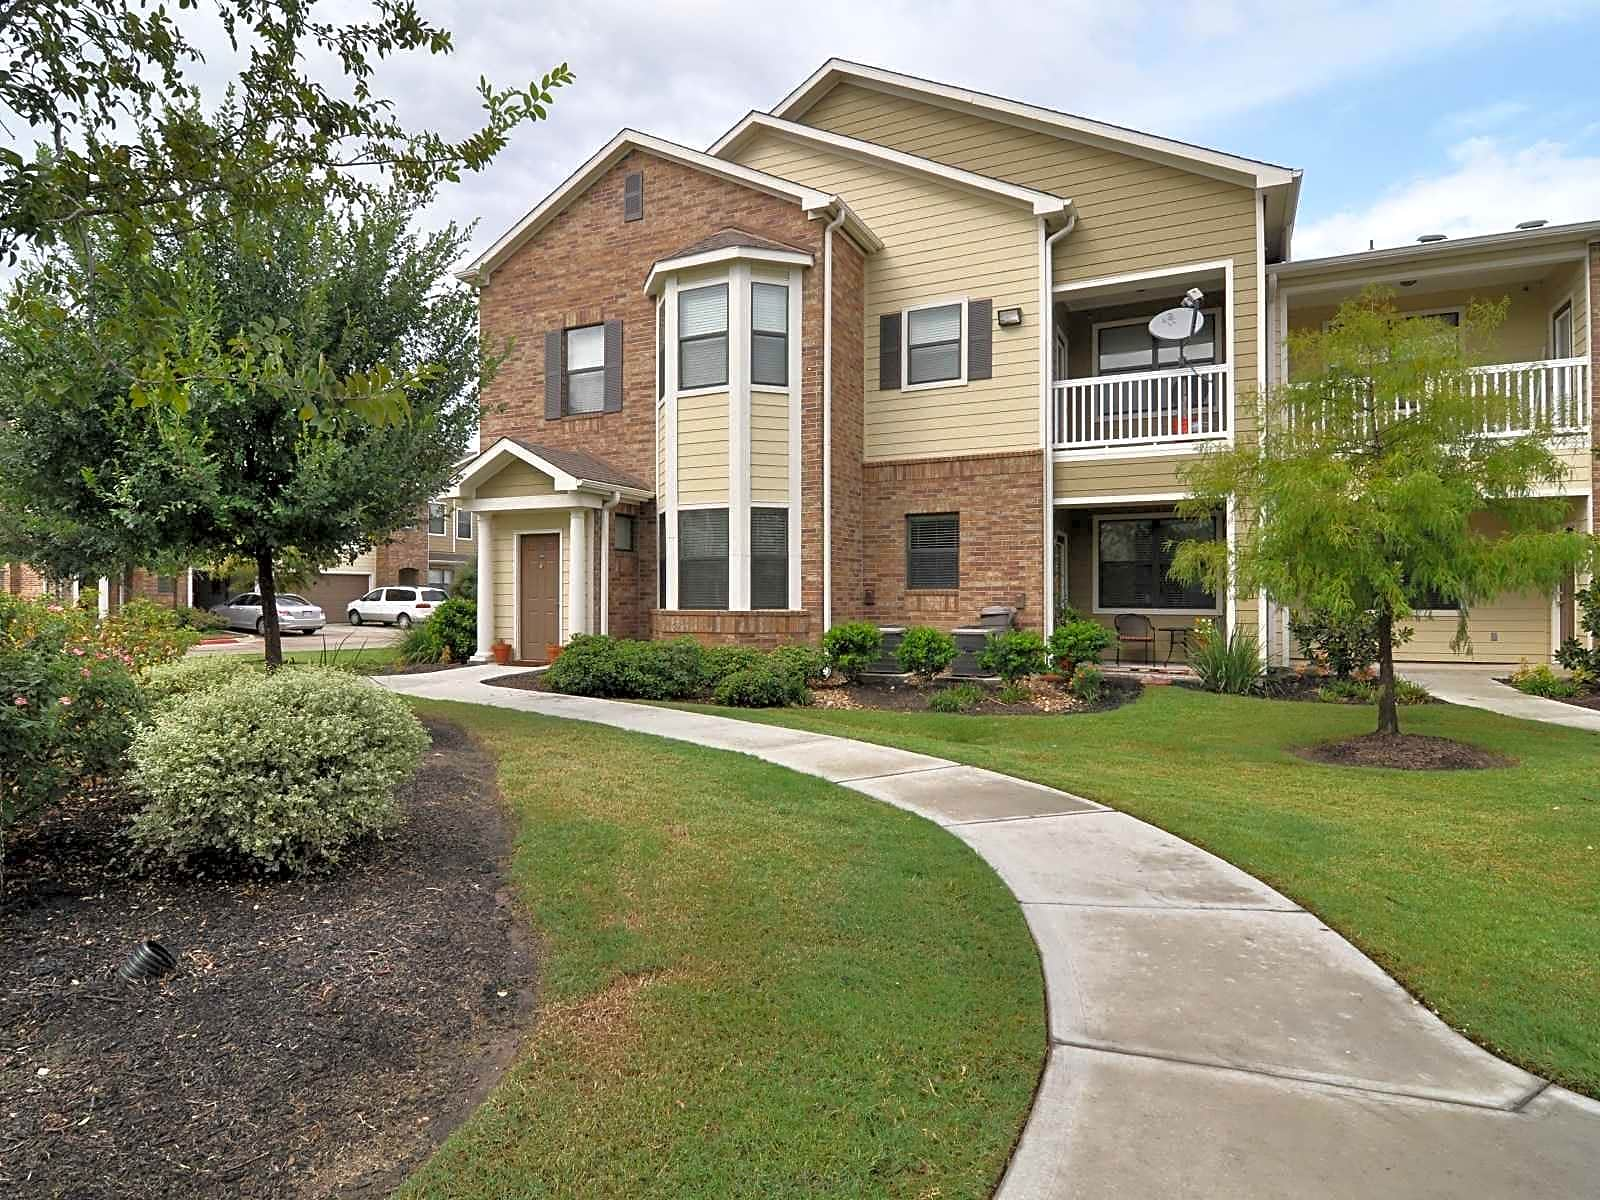 Photo: Katy Apartment for Rent - $1049.00 / month; 1 Bd & 1 Ba